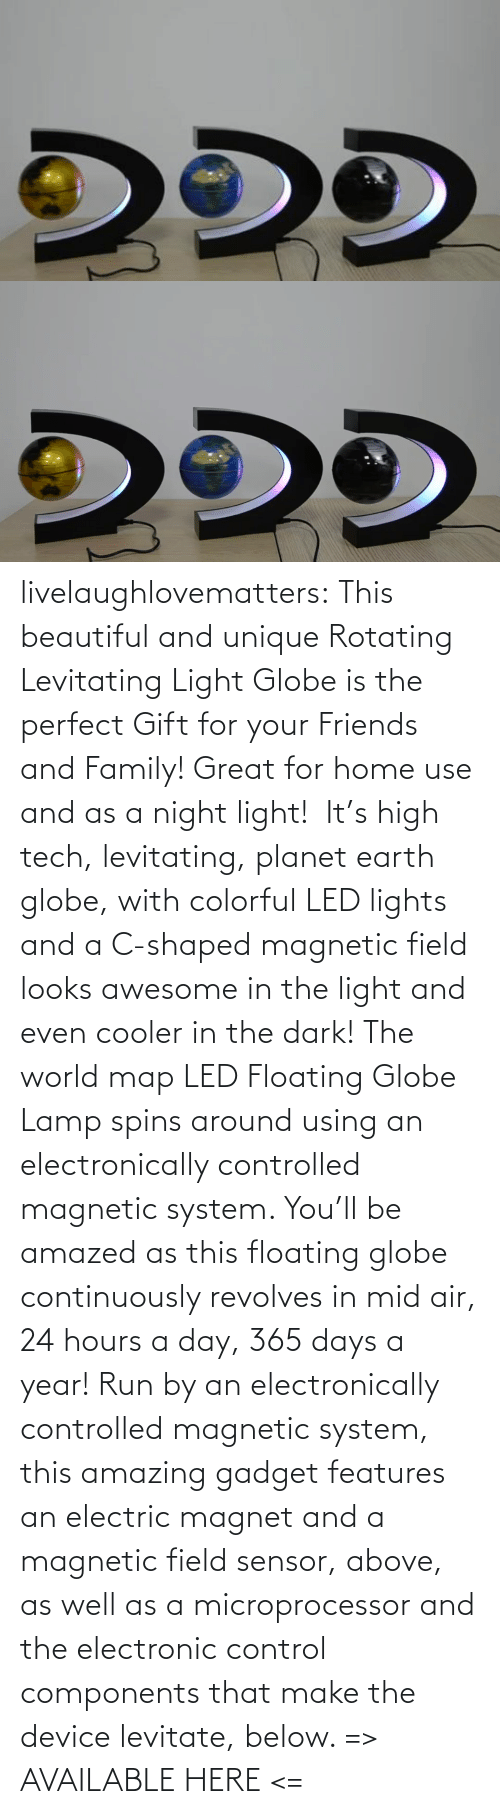 cooler: livelaughlovematters: This beautiful and unique Rotating Levitating Light Globe is the perfect Gift for your Friends and Family! Great for home use and as a night light!  It's high tech, levitating, planet earth globe, with colorful LED lights and a C-shaped magnetic field looks awesome in the light and even cooler in the dark! The world map LED Floating Globe Lamp spins around using an electronically controlled magnetic system.  You'll be amazed as this floating globe continuously revolves in mid air, 24 hours a day, 365 days a year! Run by an electronically controlled magnetic system, this amazing gadget features an electric magnet and a magnetic field sensor, above, as well as a microprocessor and the electronic control components that make the device levitate, below.  => AVAILABLE HERE <=